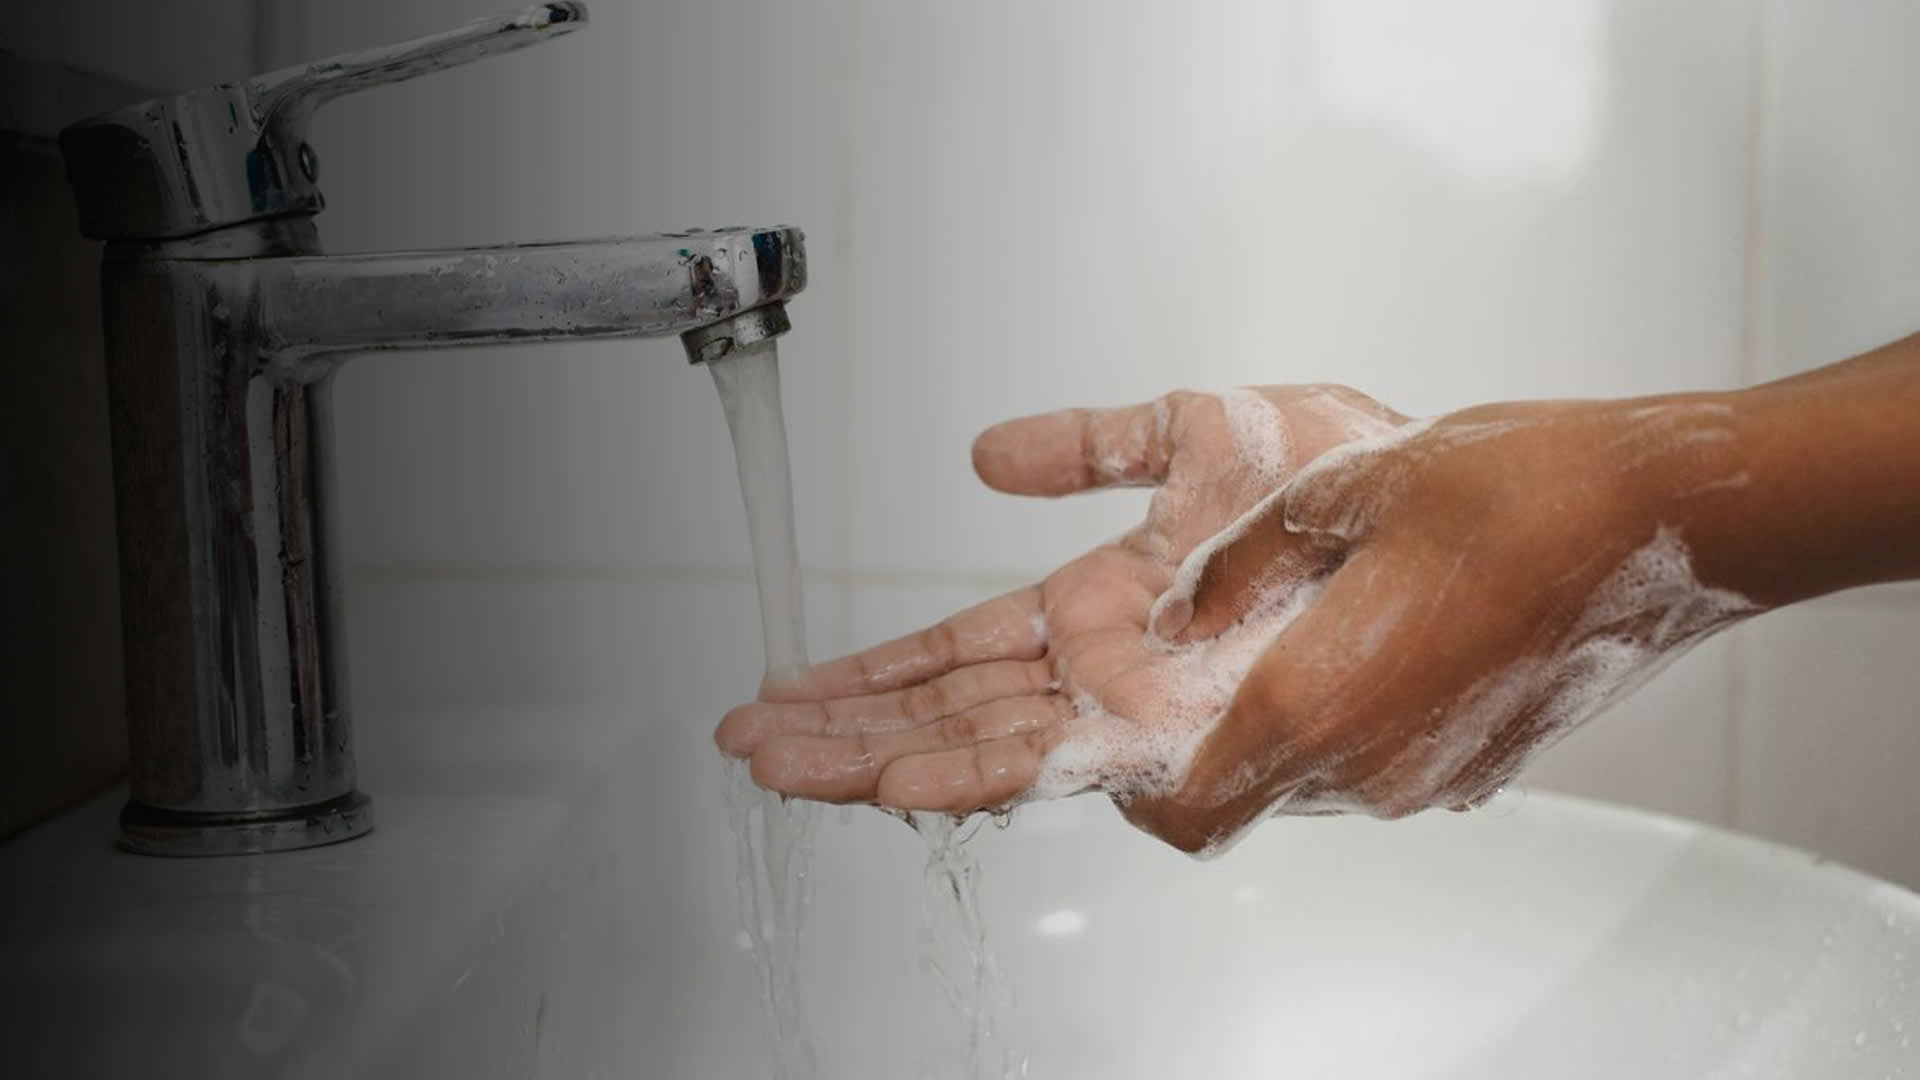 Washing hands to prevent infection